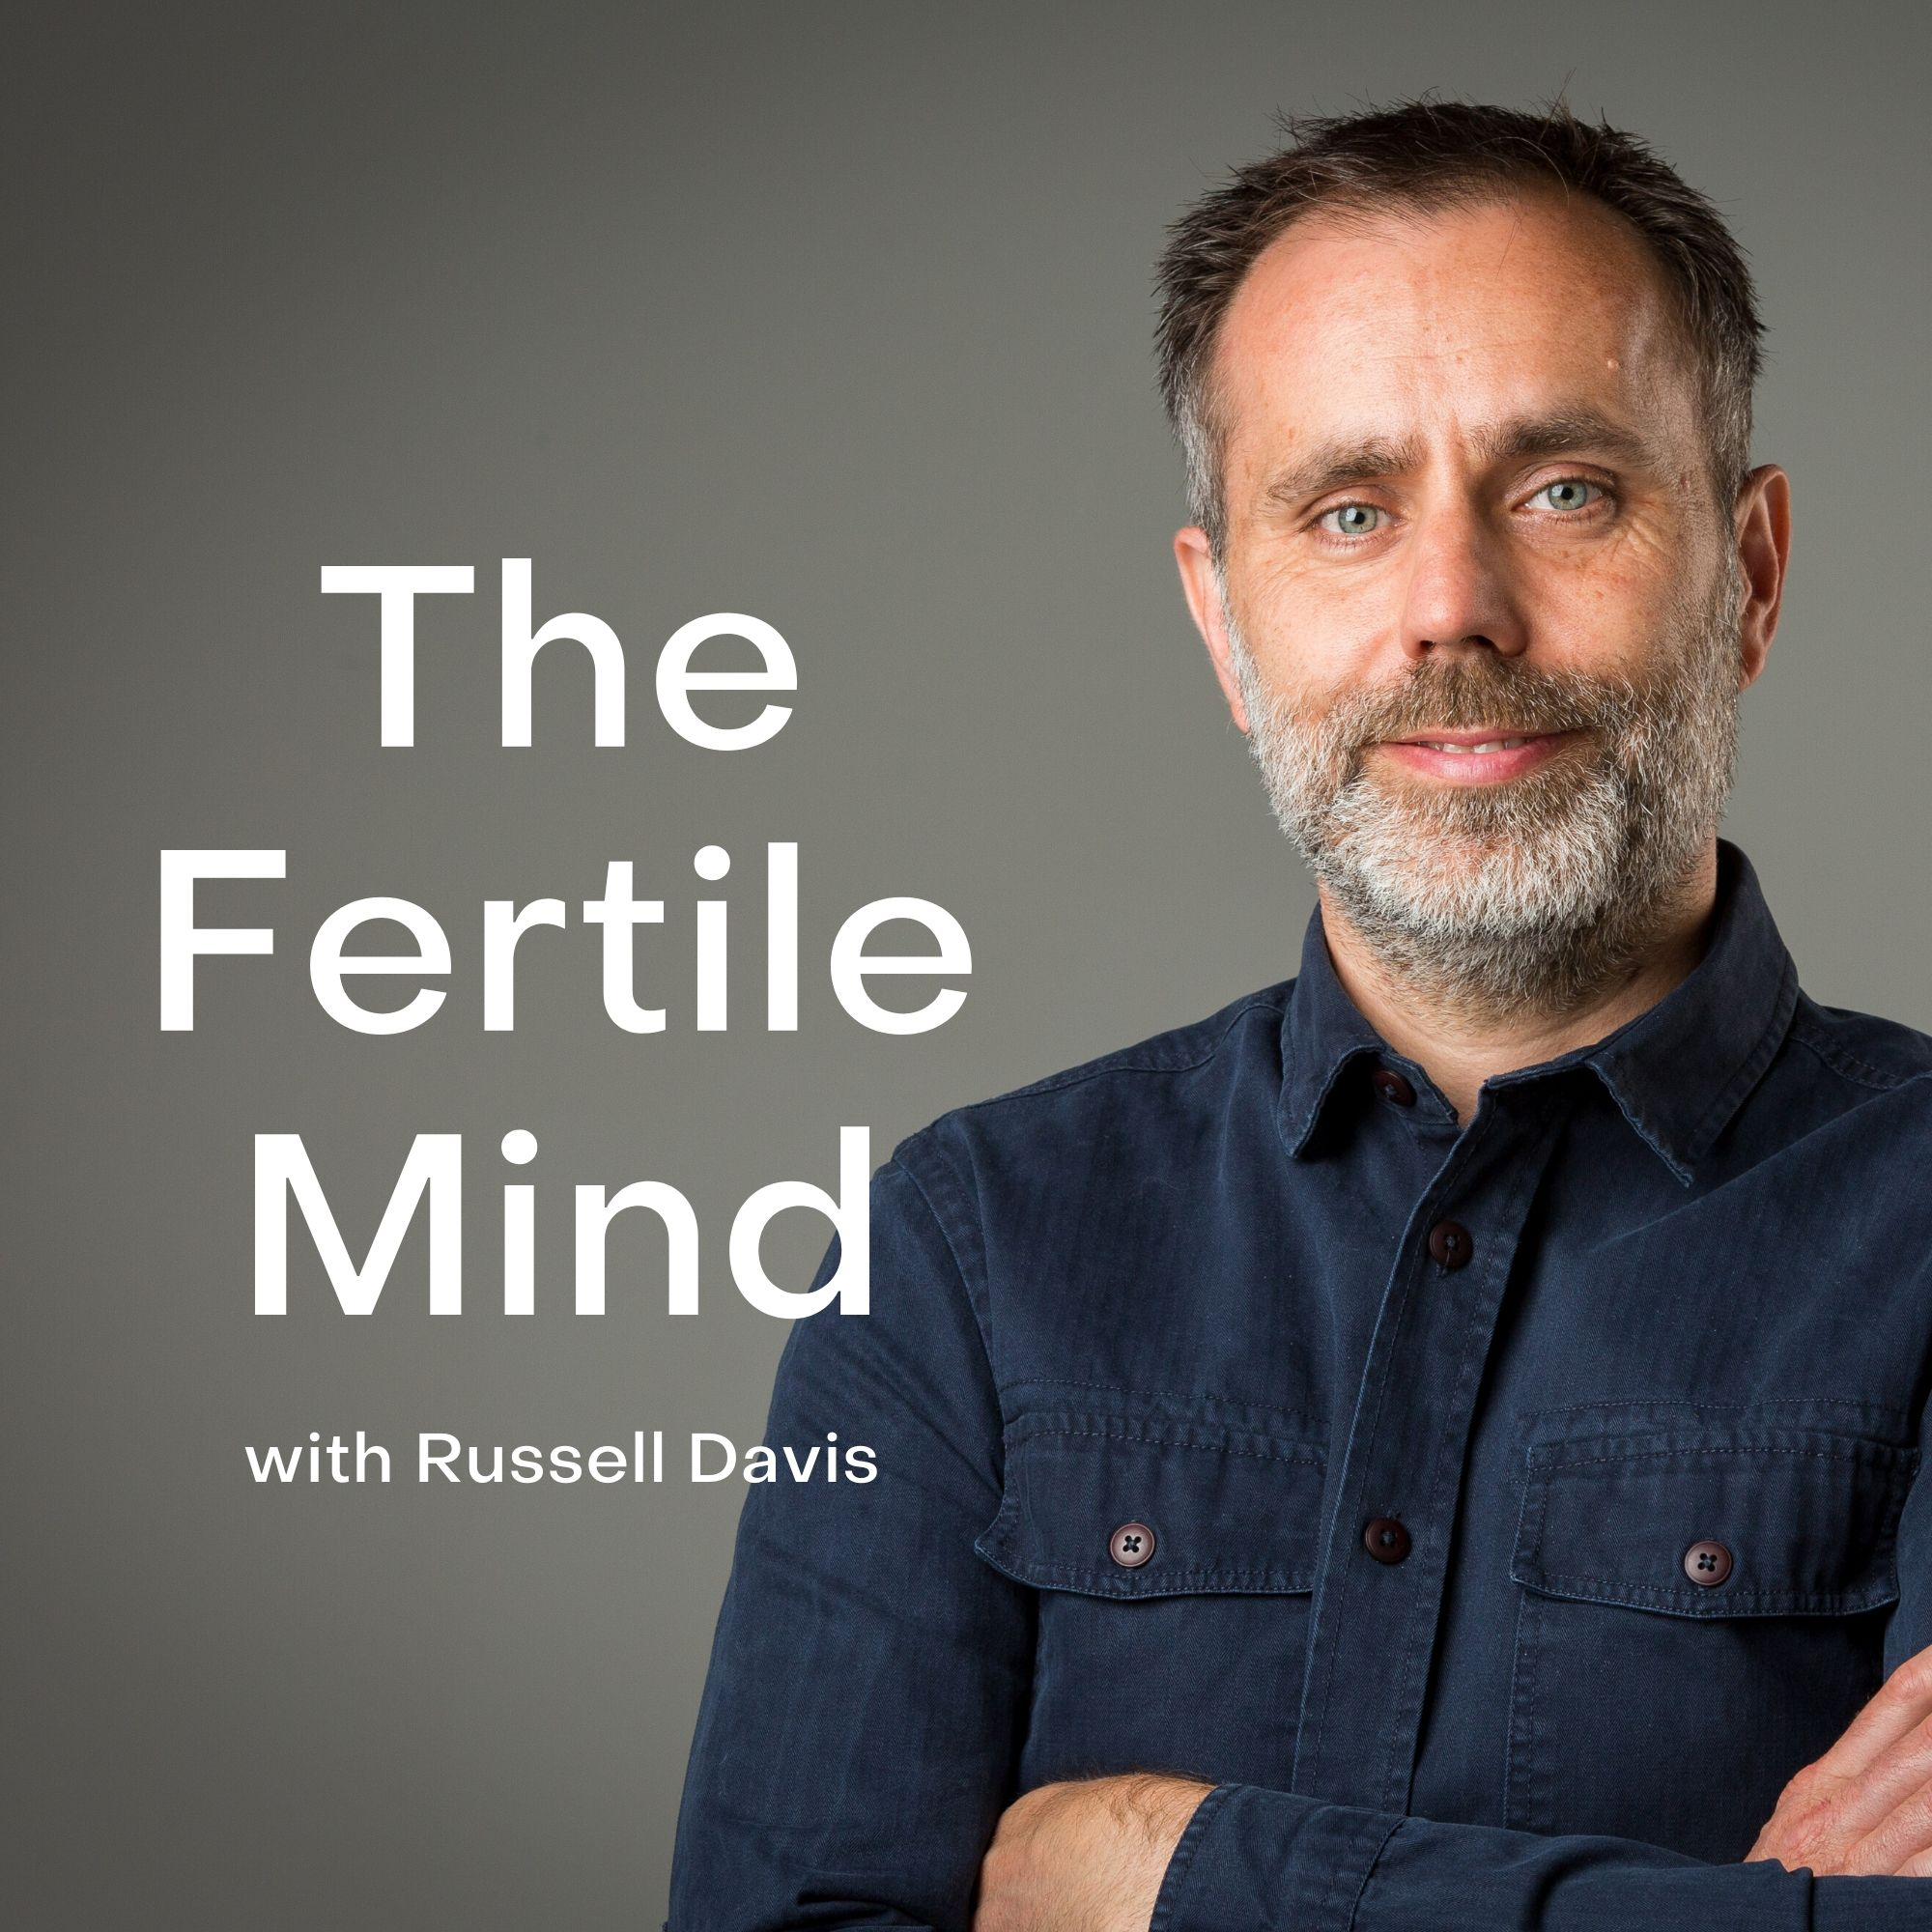 The Fertile Mind: fertility from the inside out